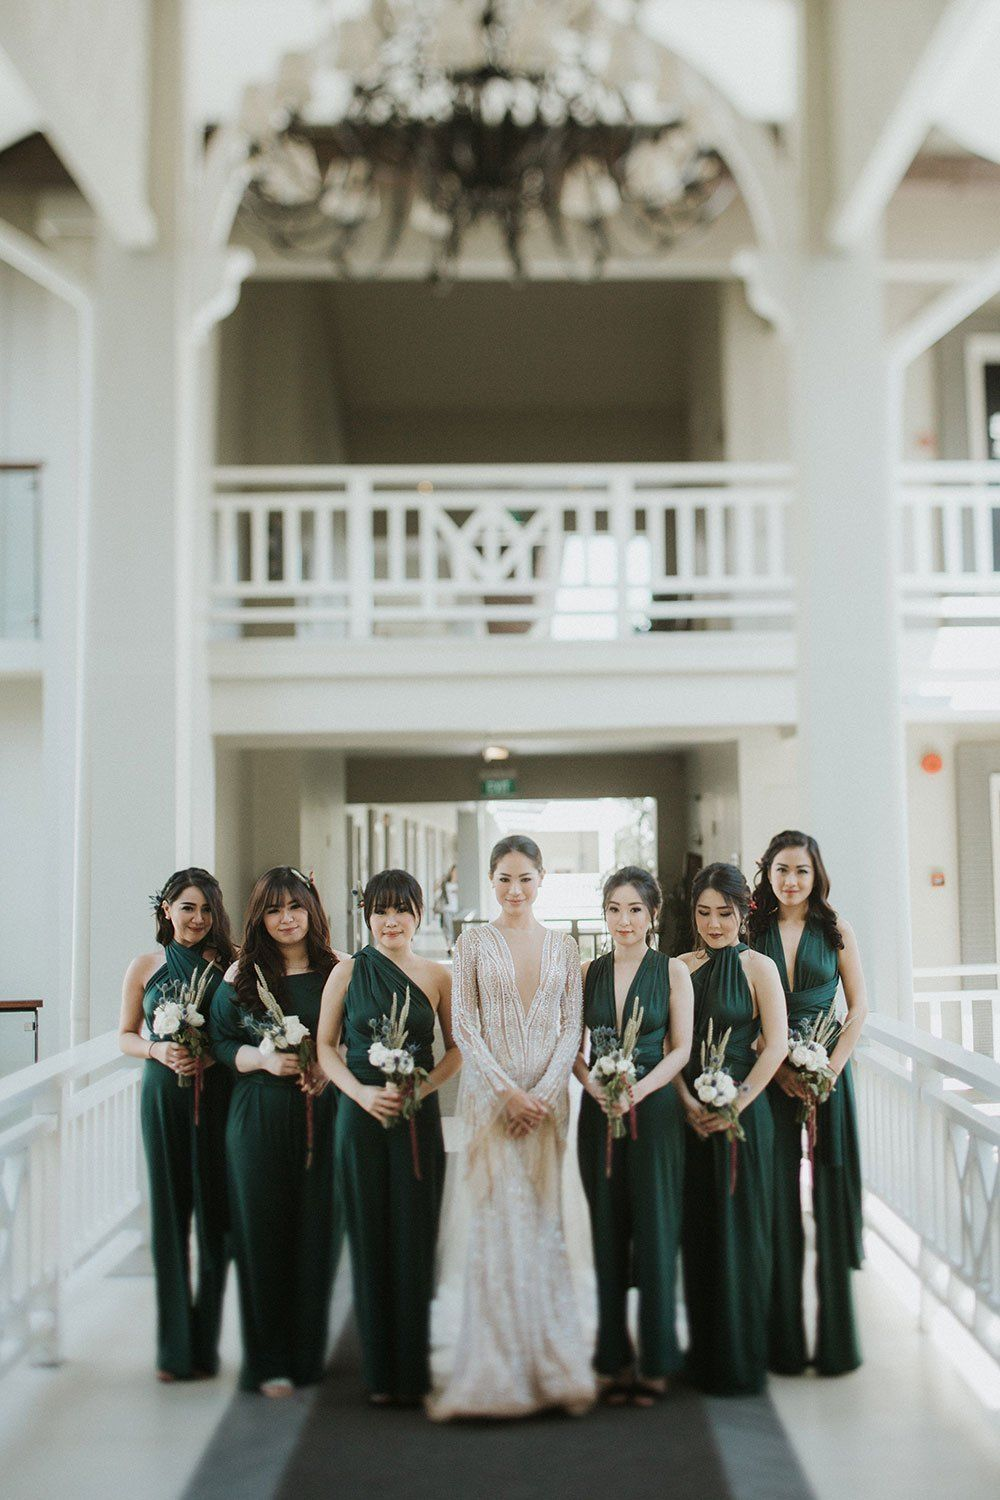 A Magical Forest Wedding At Pine Forest Camp Bandung - The Wedding Notebook magazine